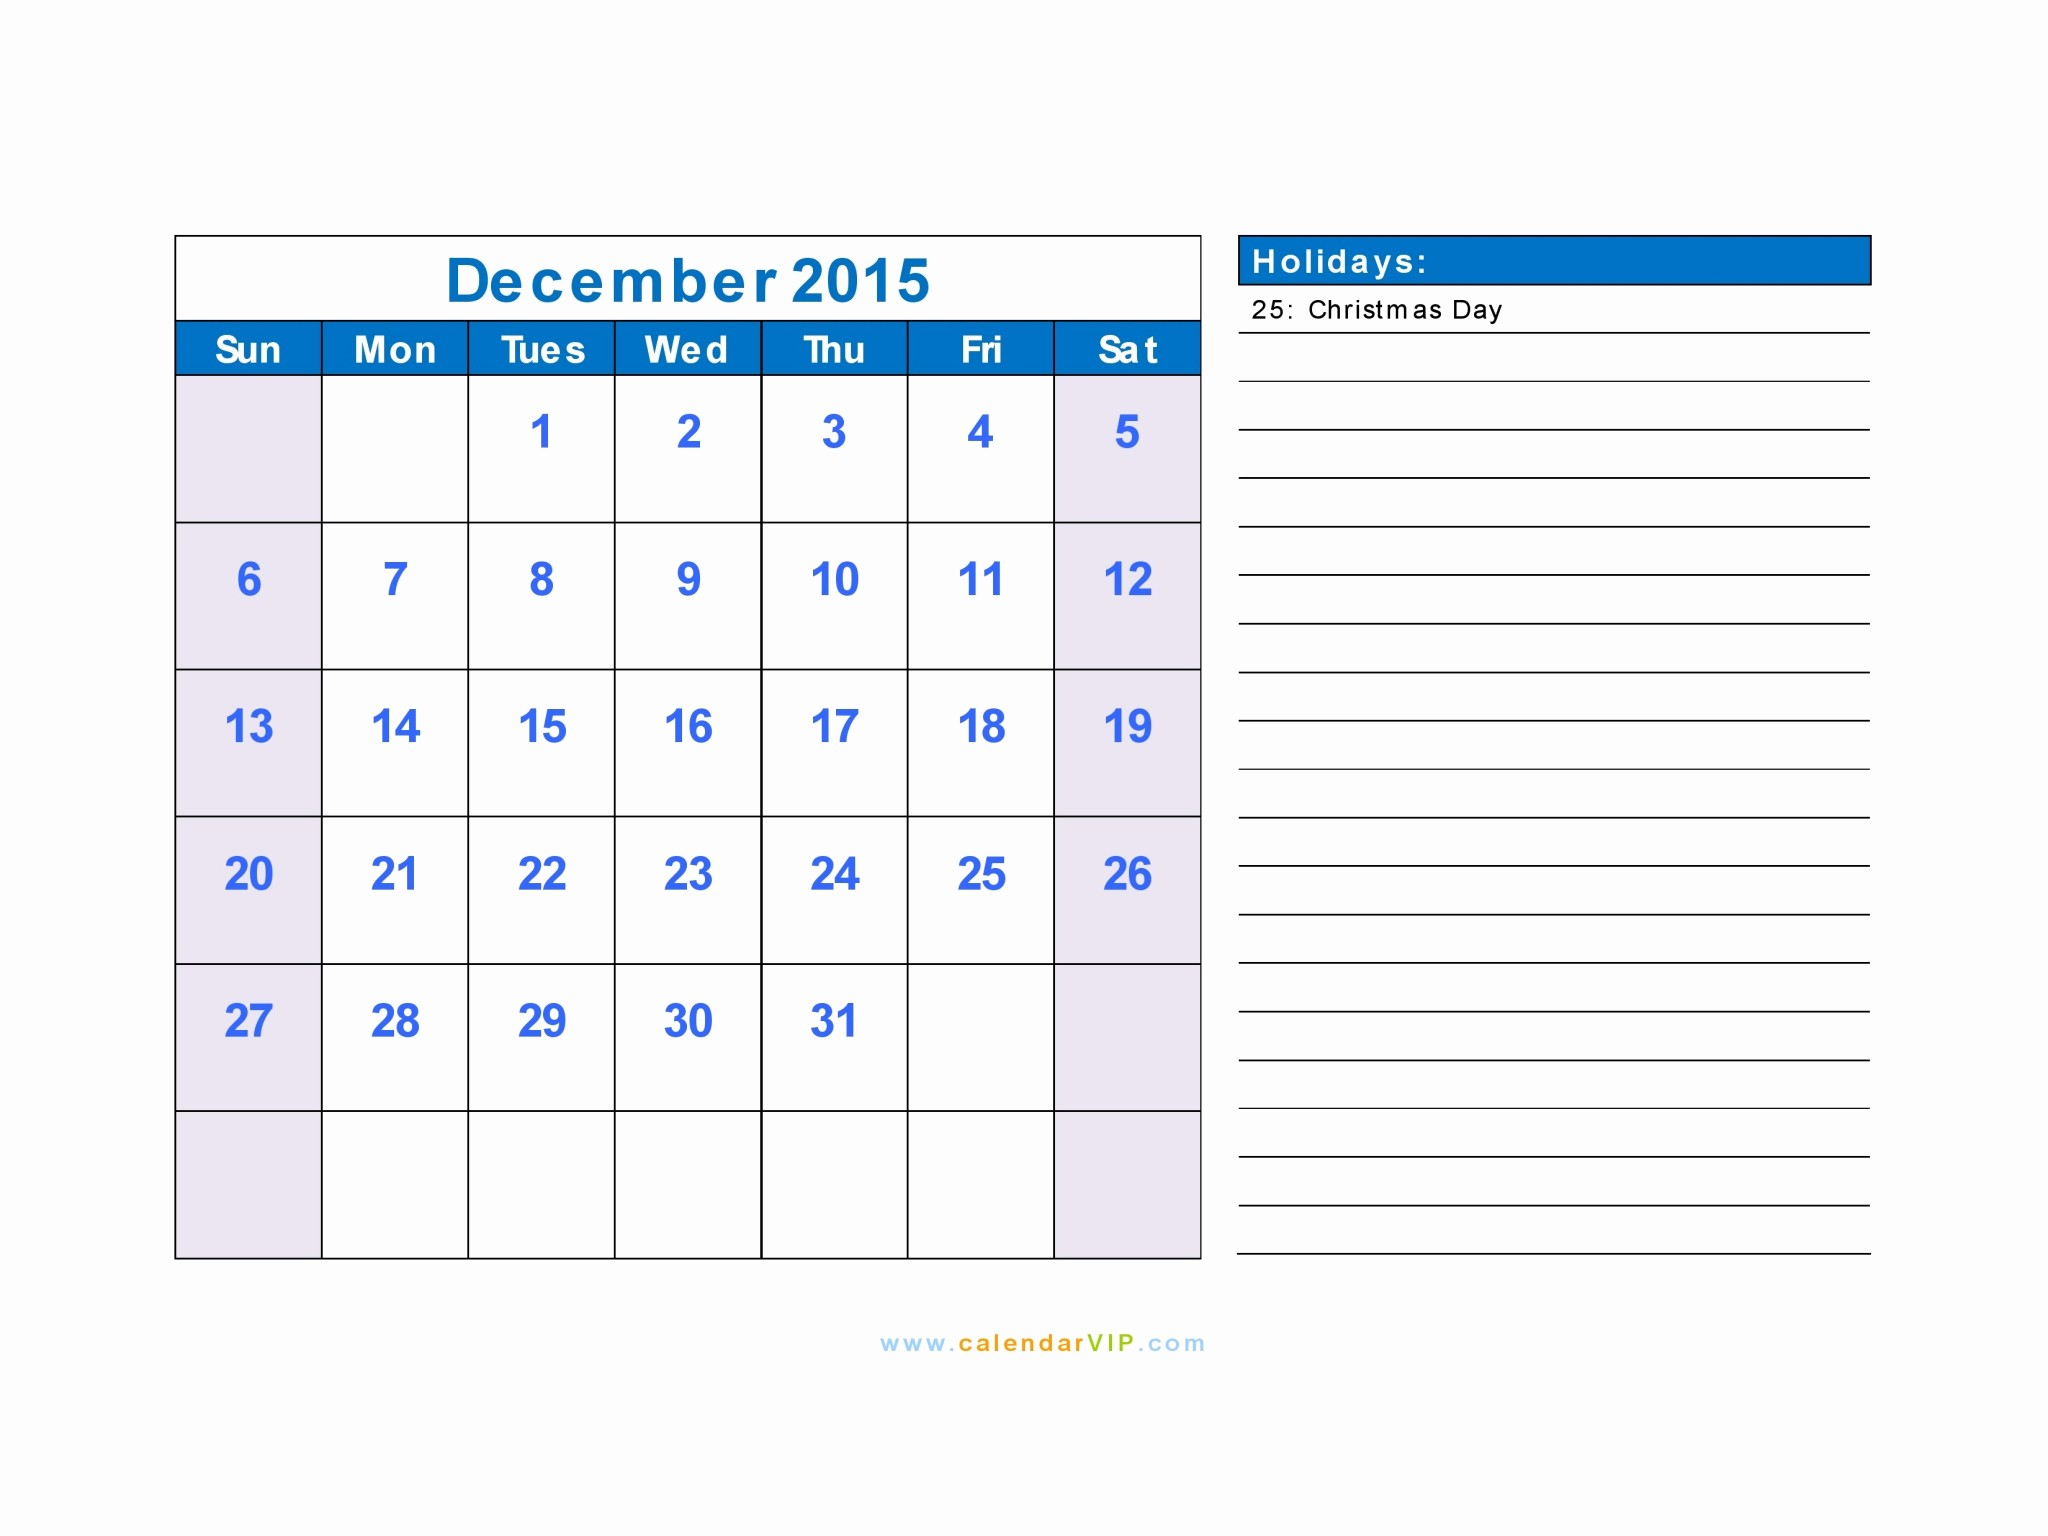 December 2015 Calendar Word Document Elegant December 2015 Calendar Blank Printable Calendar Template